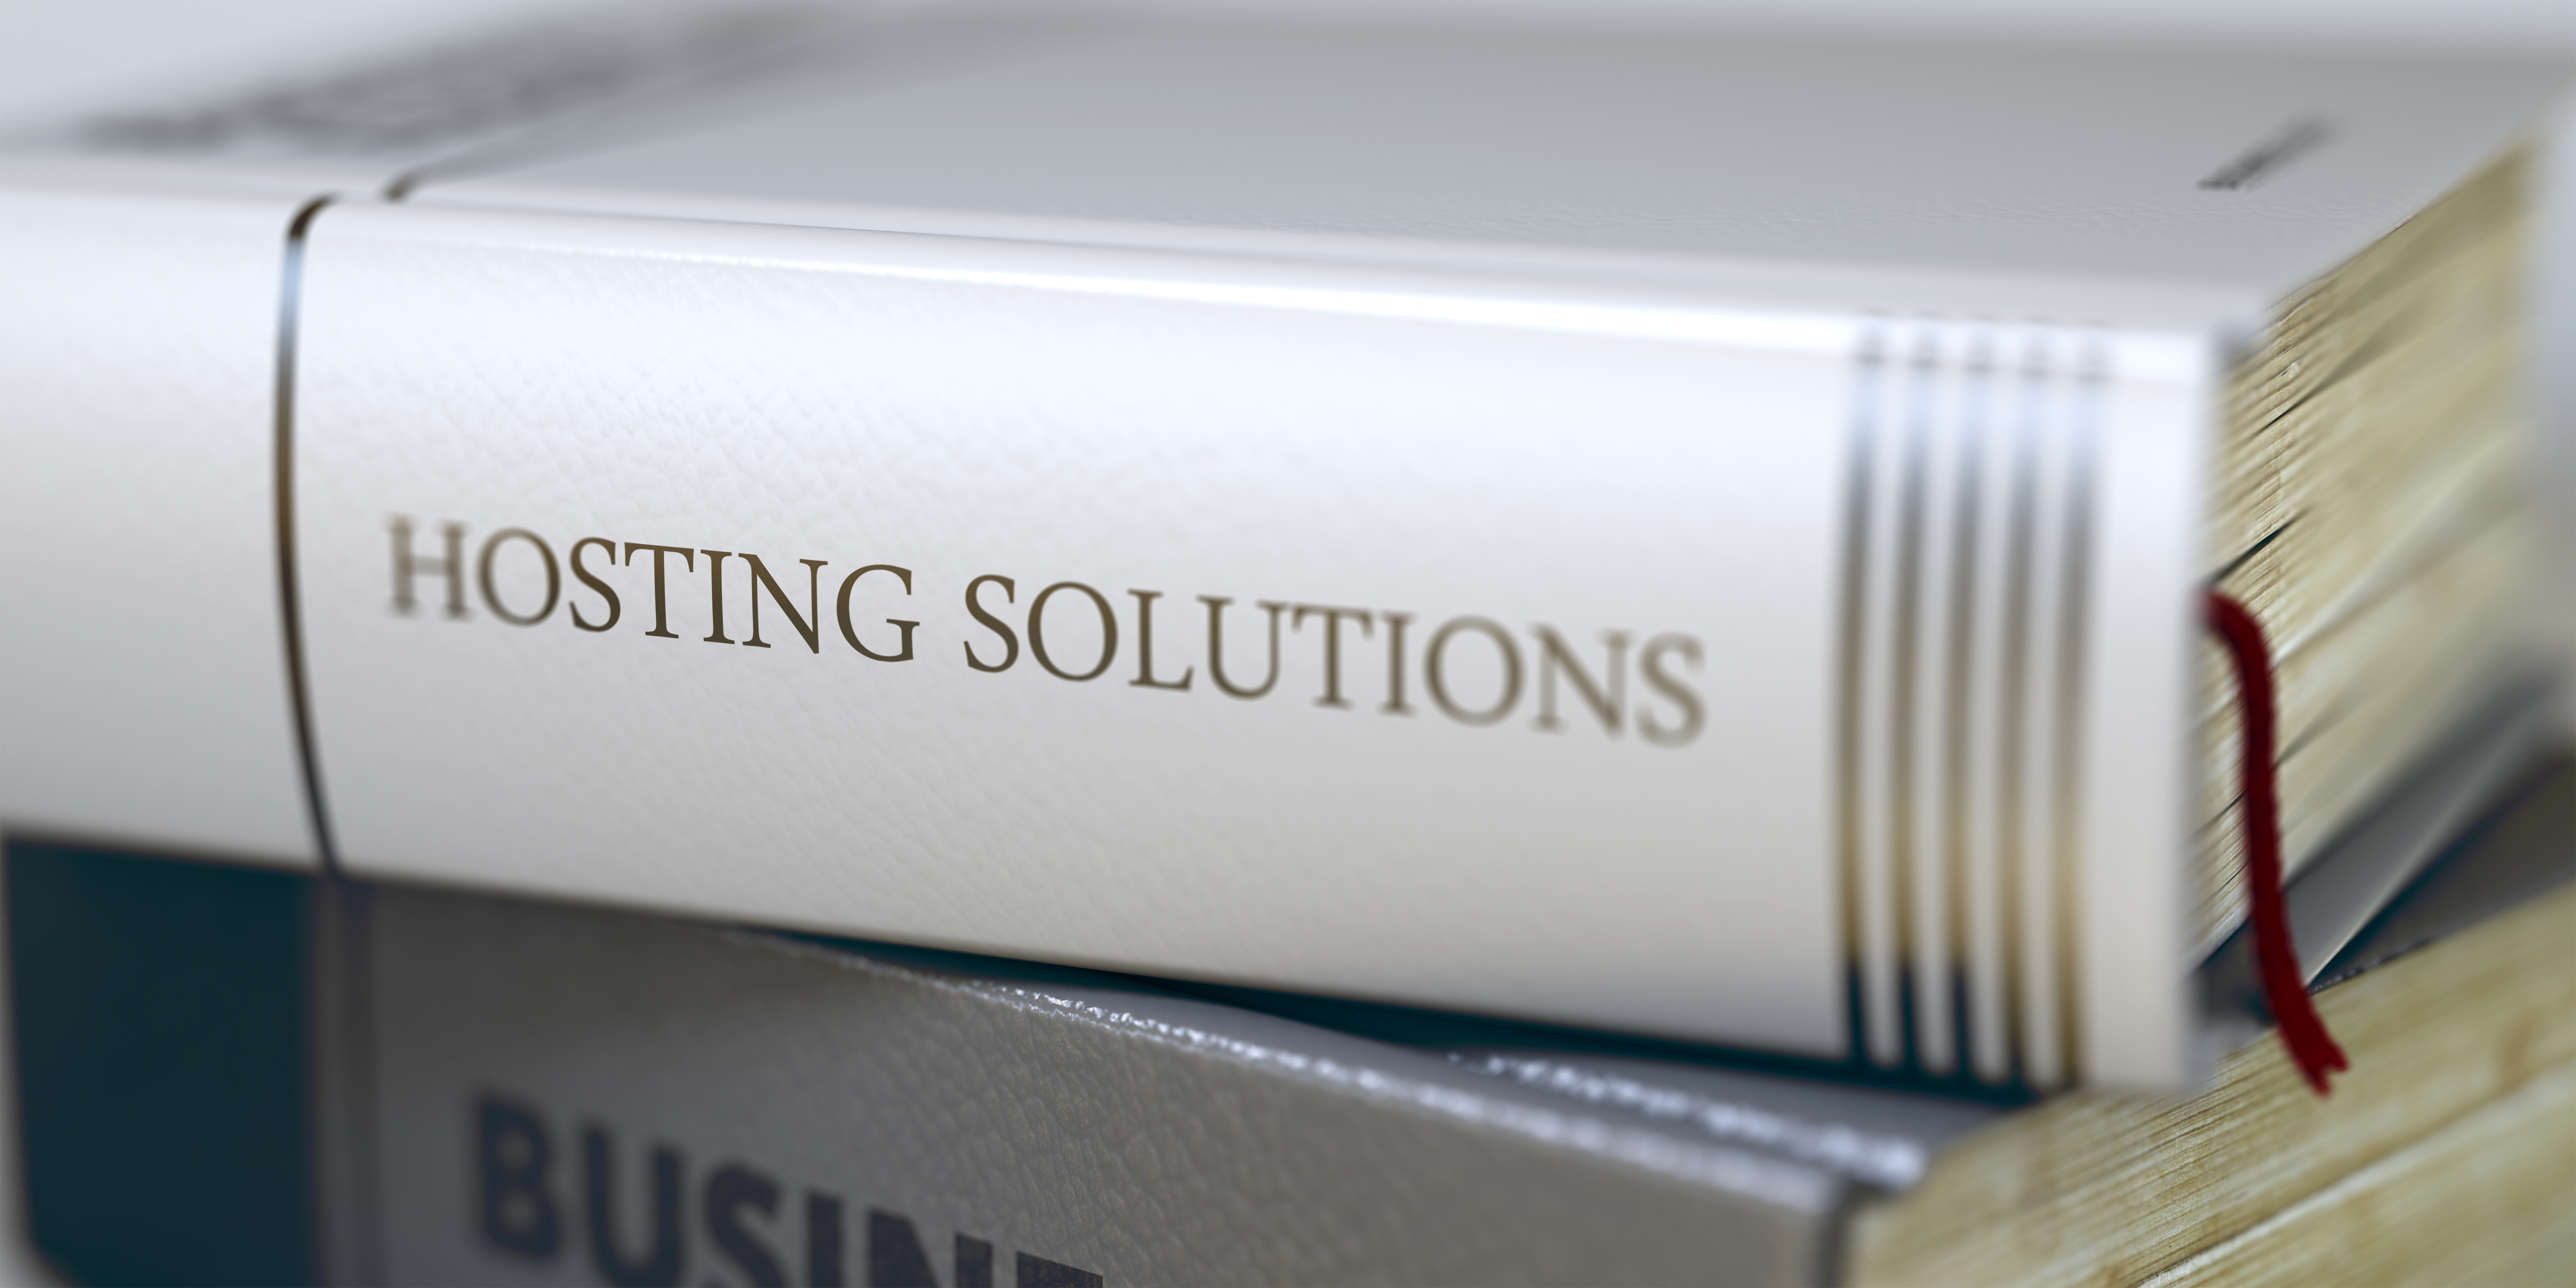 Hosting solutions book